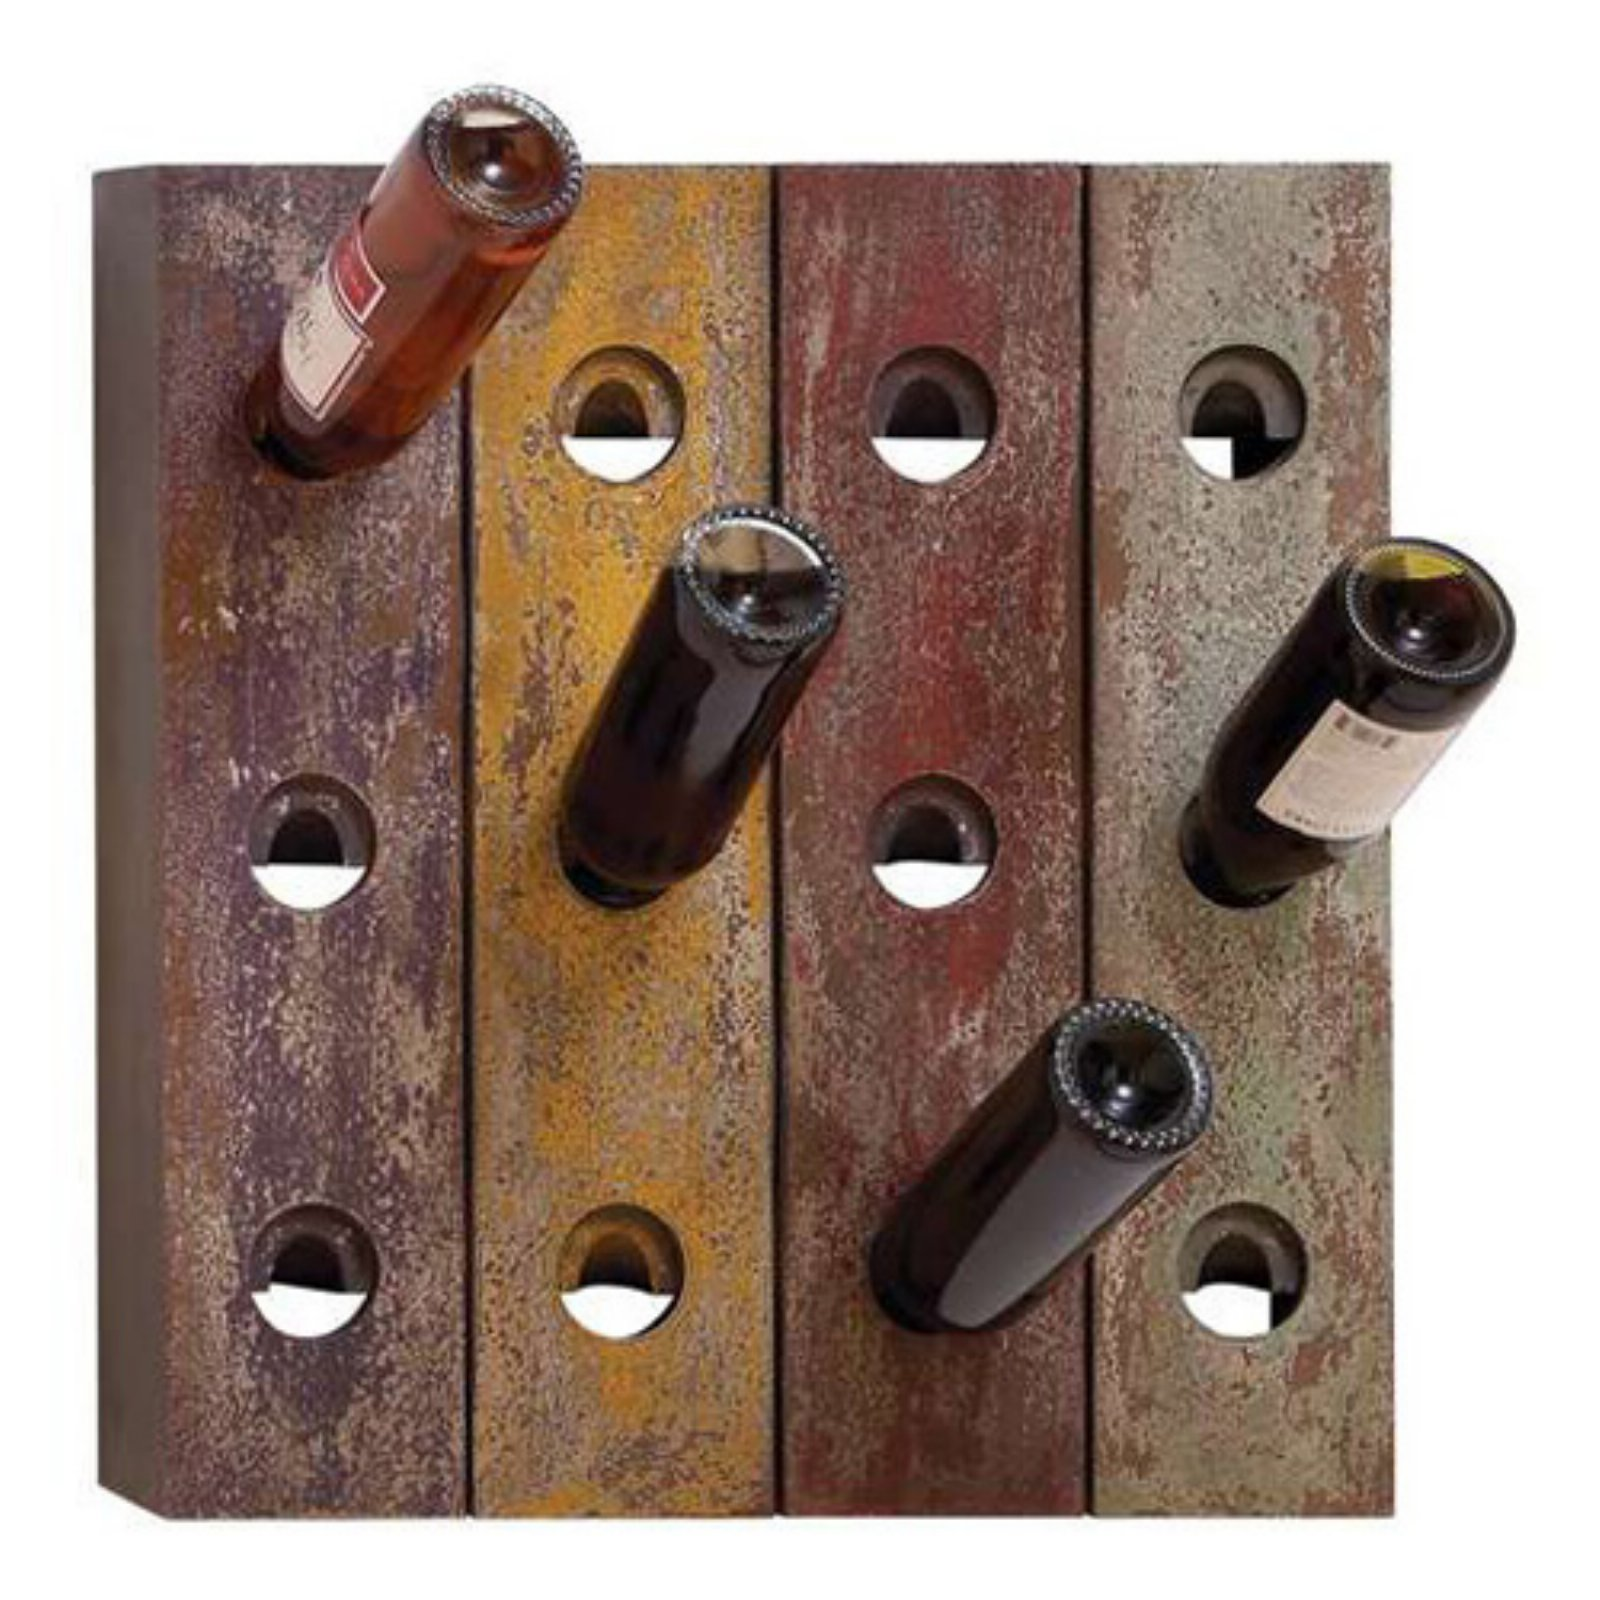 Woodland Imports Rustic Old Holes 12 Bottle Wine Rack